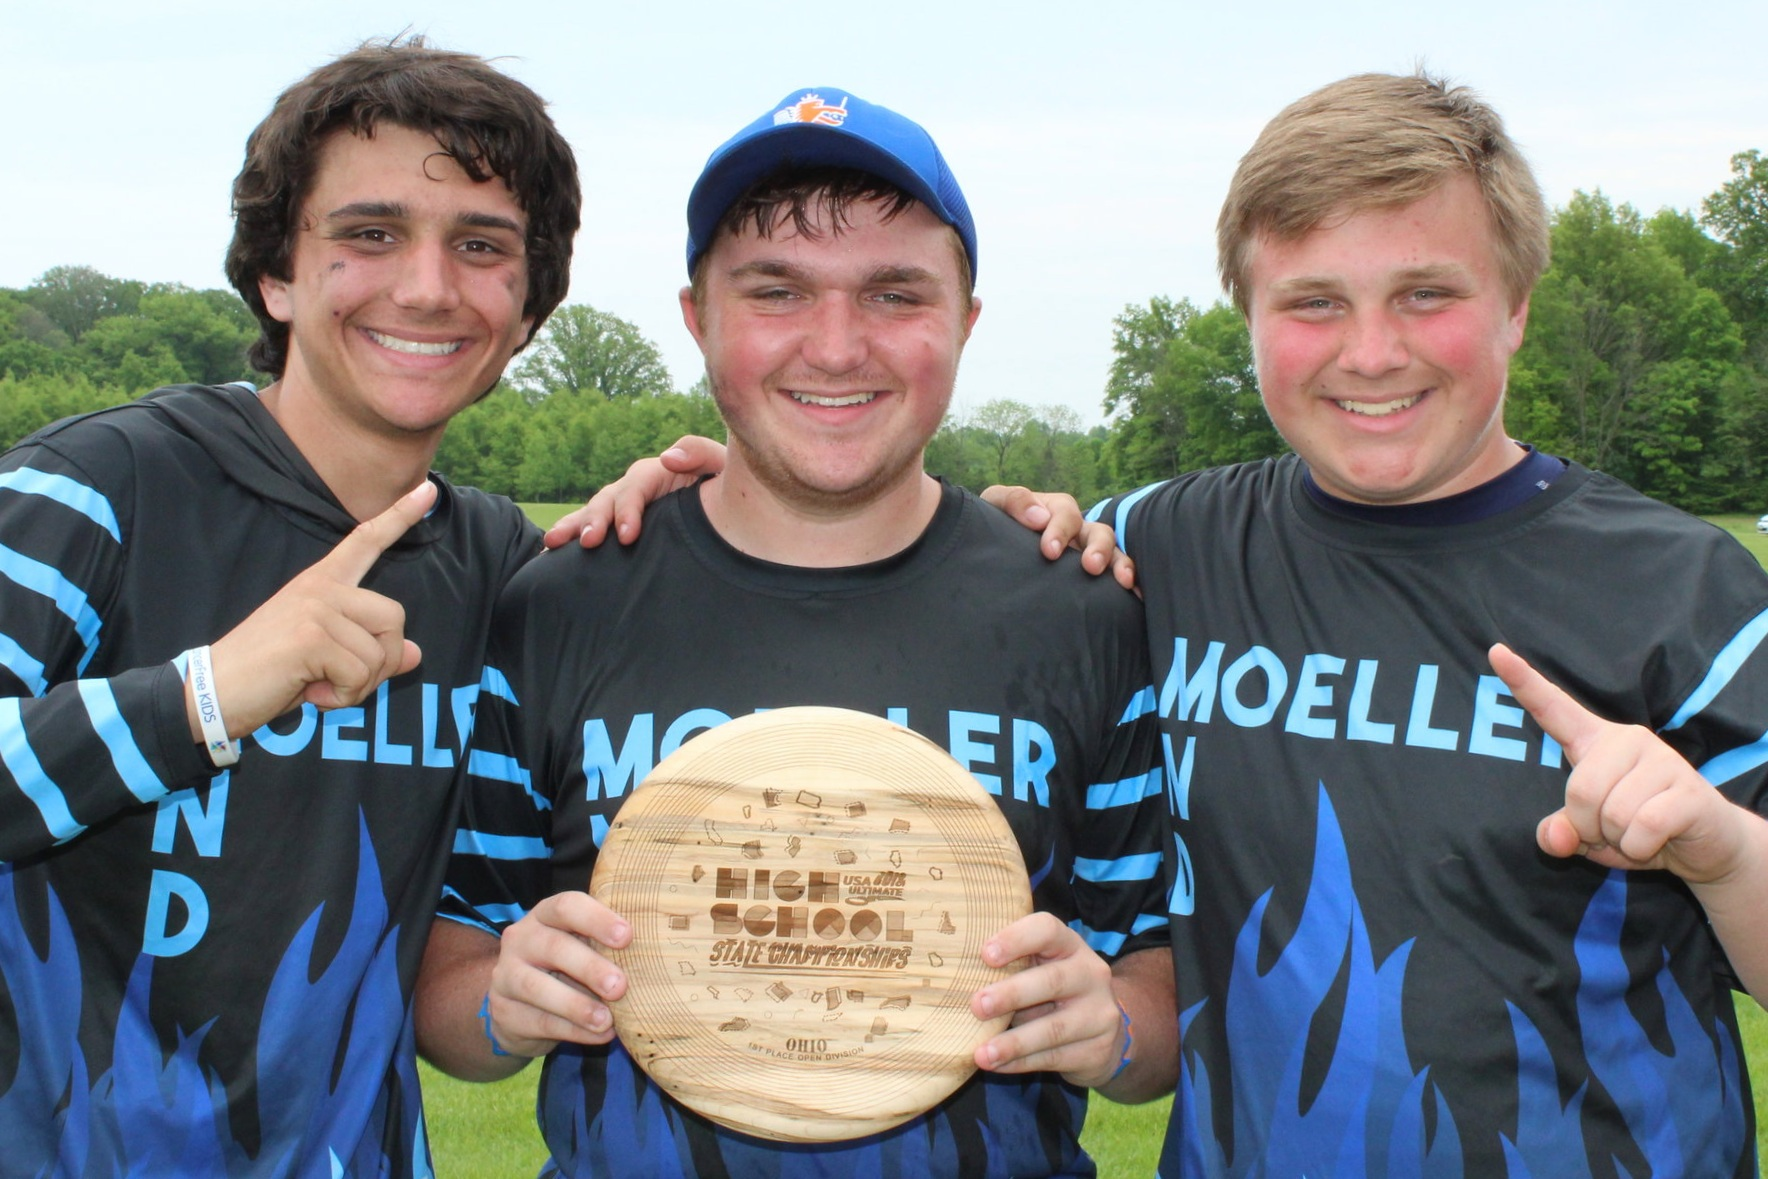 Jimmy, Sam, and Adam holding State Championship Trophy  Picture By: Amy George